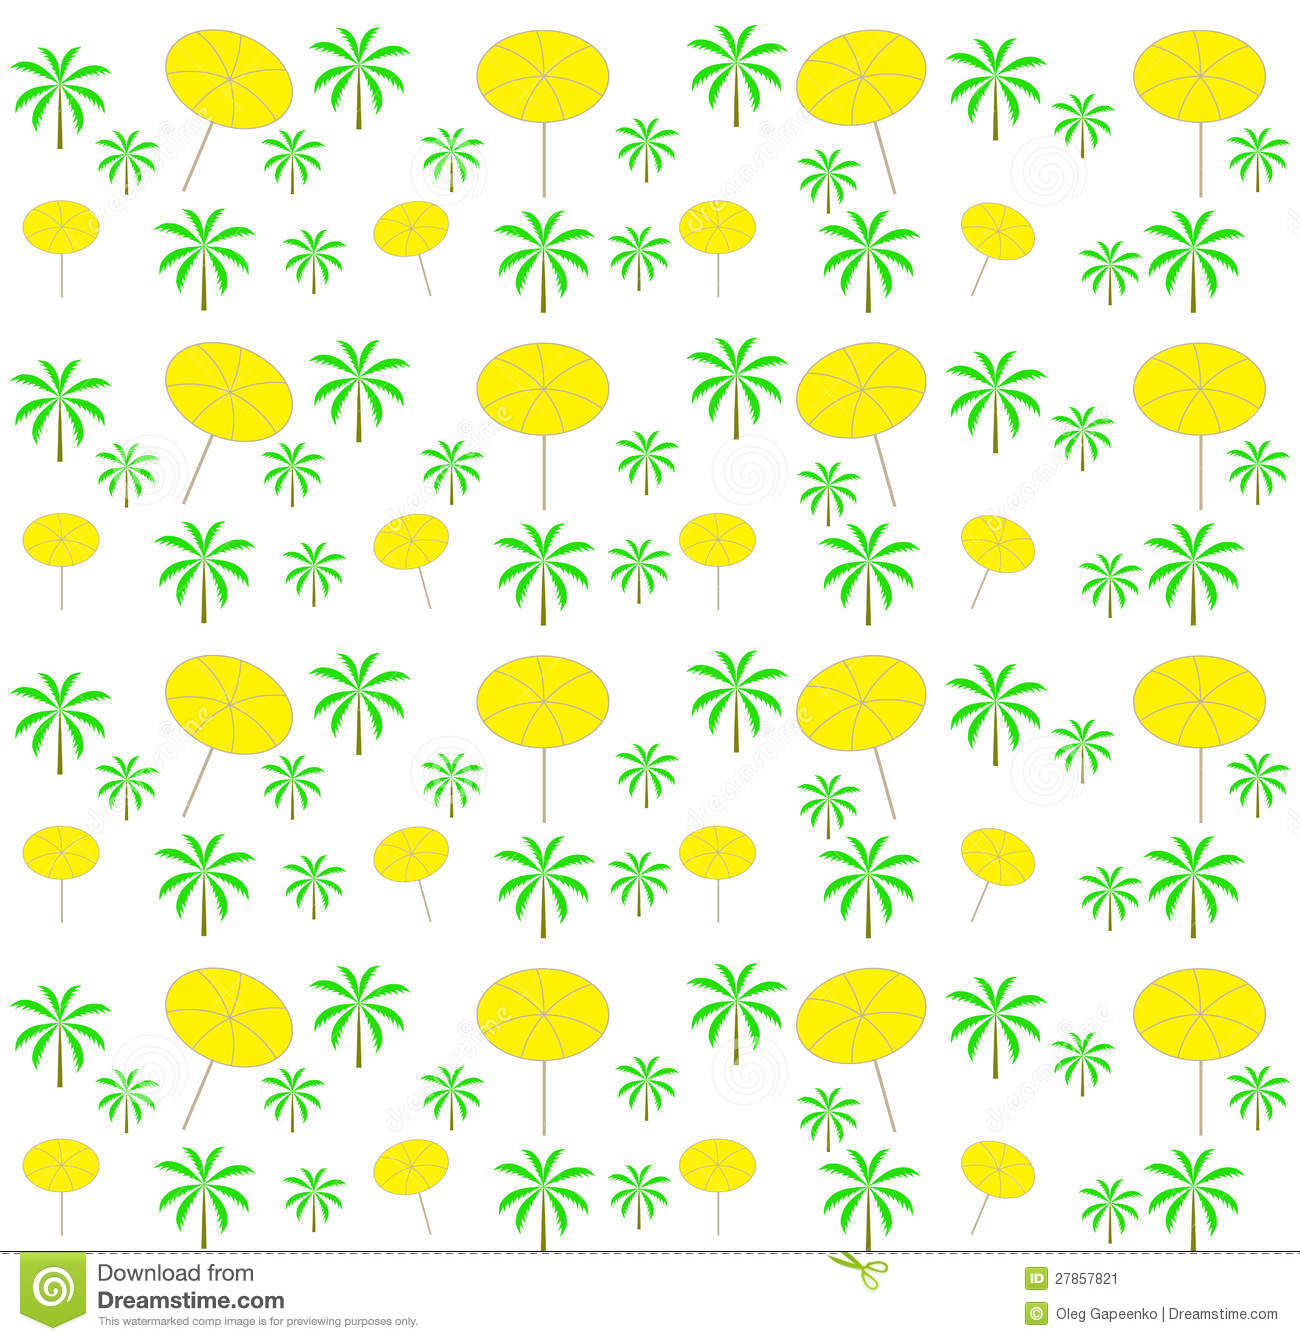 palmen nahtloses muster der regenschirme vektor vektor. Black Bedroom Furniture Sets. Home Design Ideas